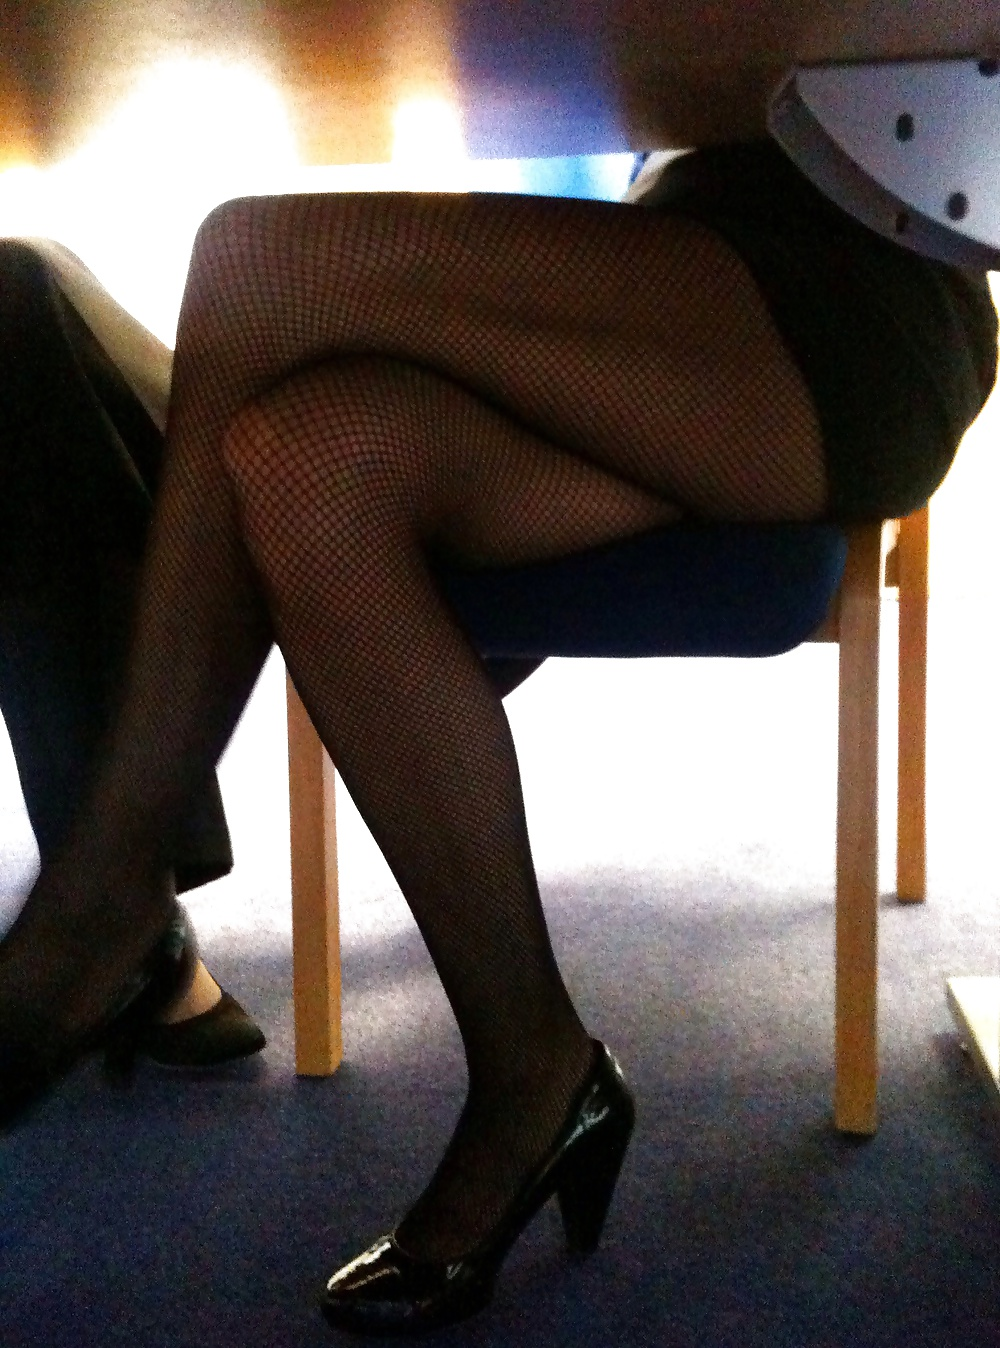 Co worker upskirt pic 574